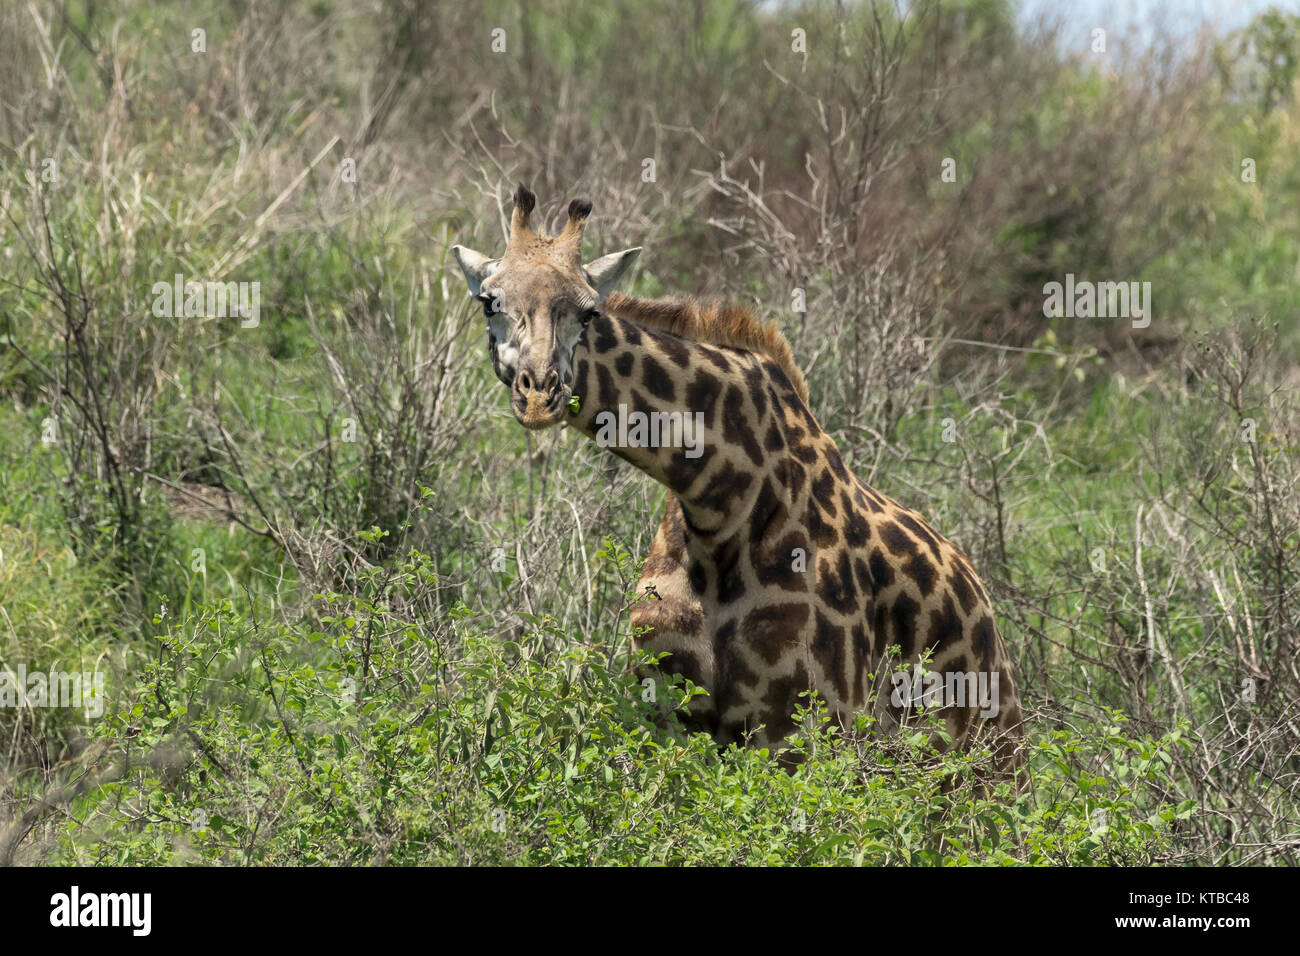 Young Masai giraffe (Giraffa tippelskirchi) munching on leaves, Arusha NP, Tanzania - Stock Image